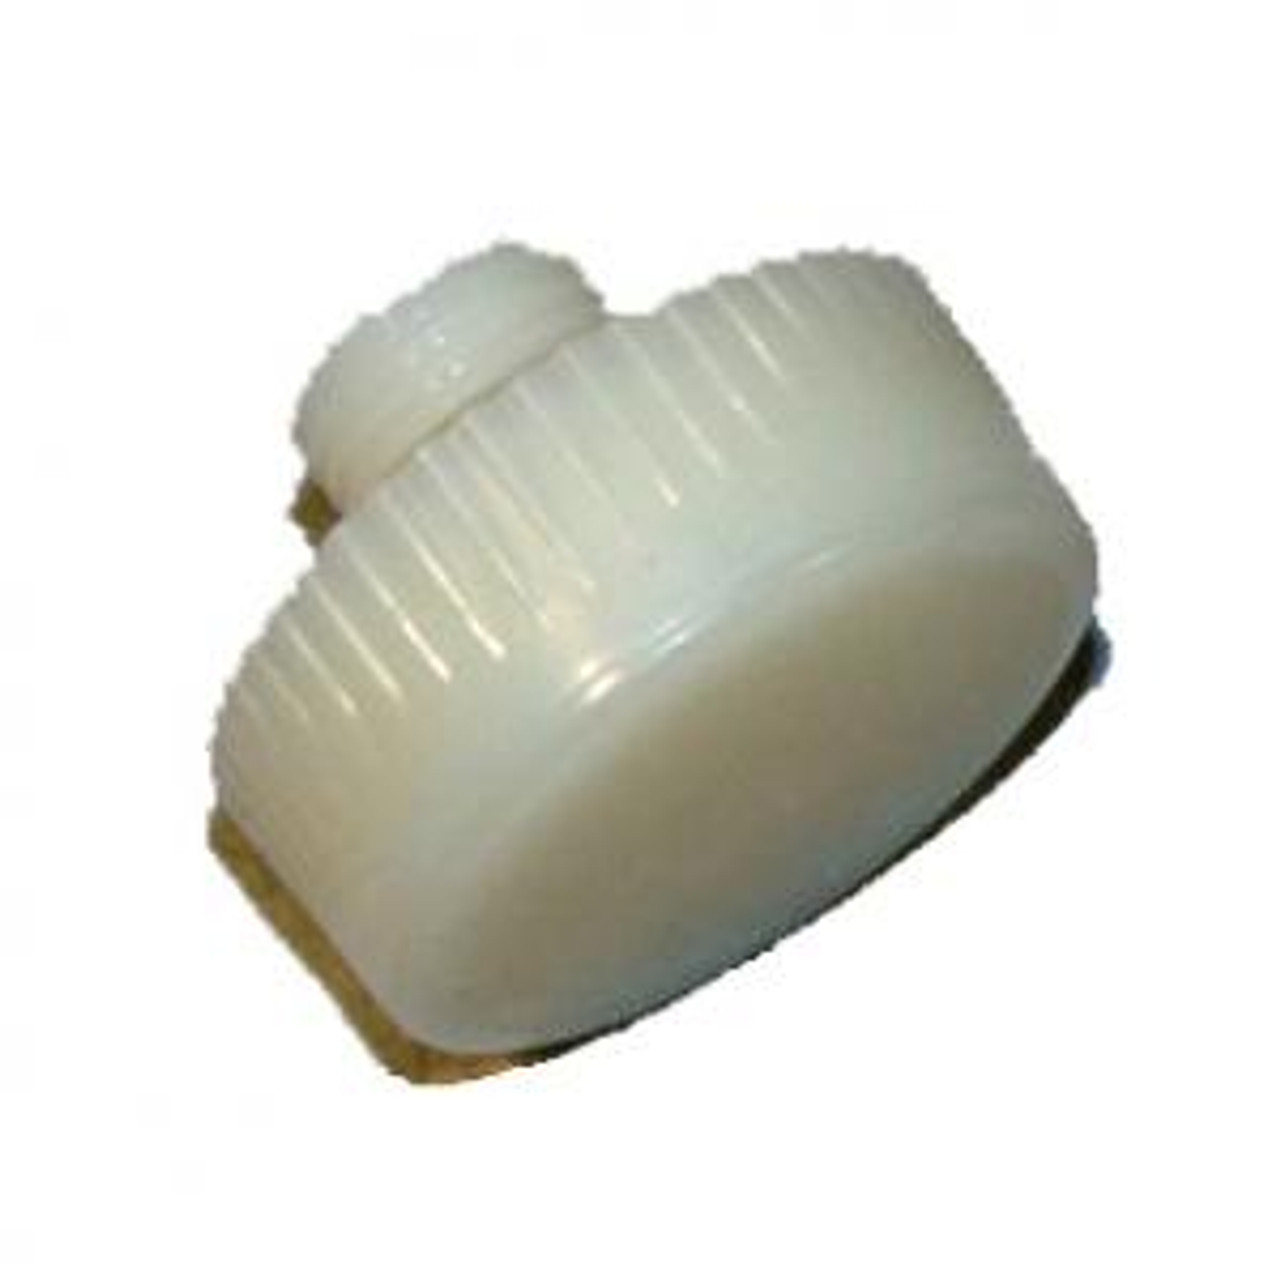 "1.5"" Hard White nylon replacement Tip for DB 150 or NT150 hammers. One tip."